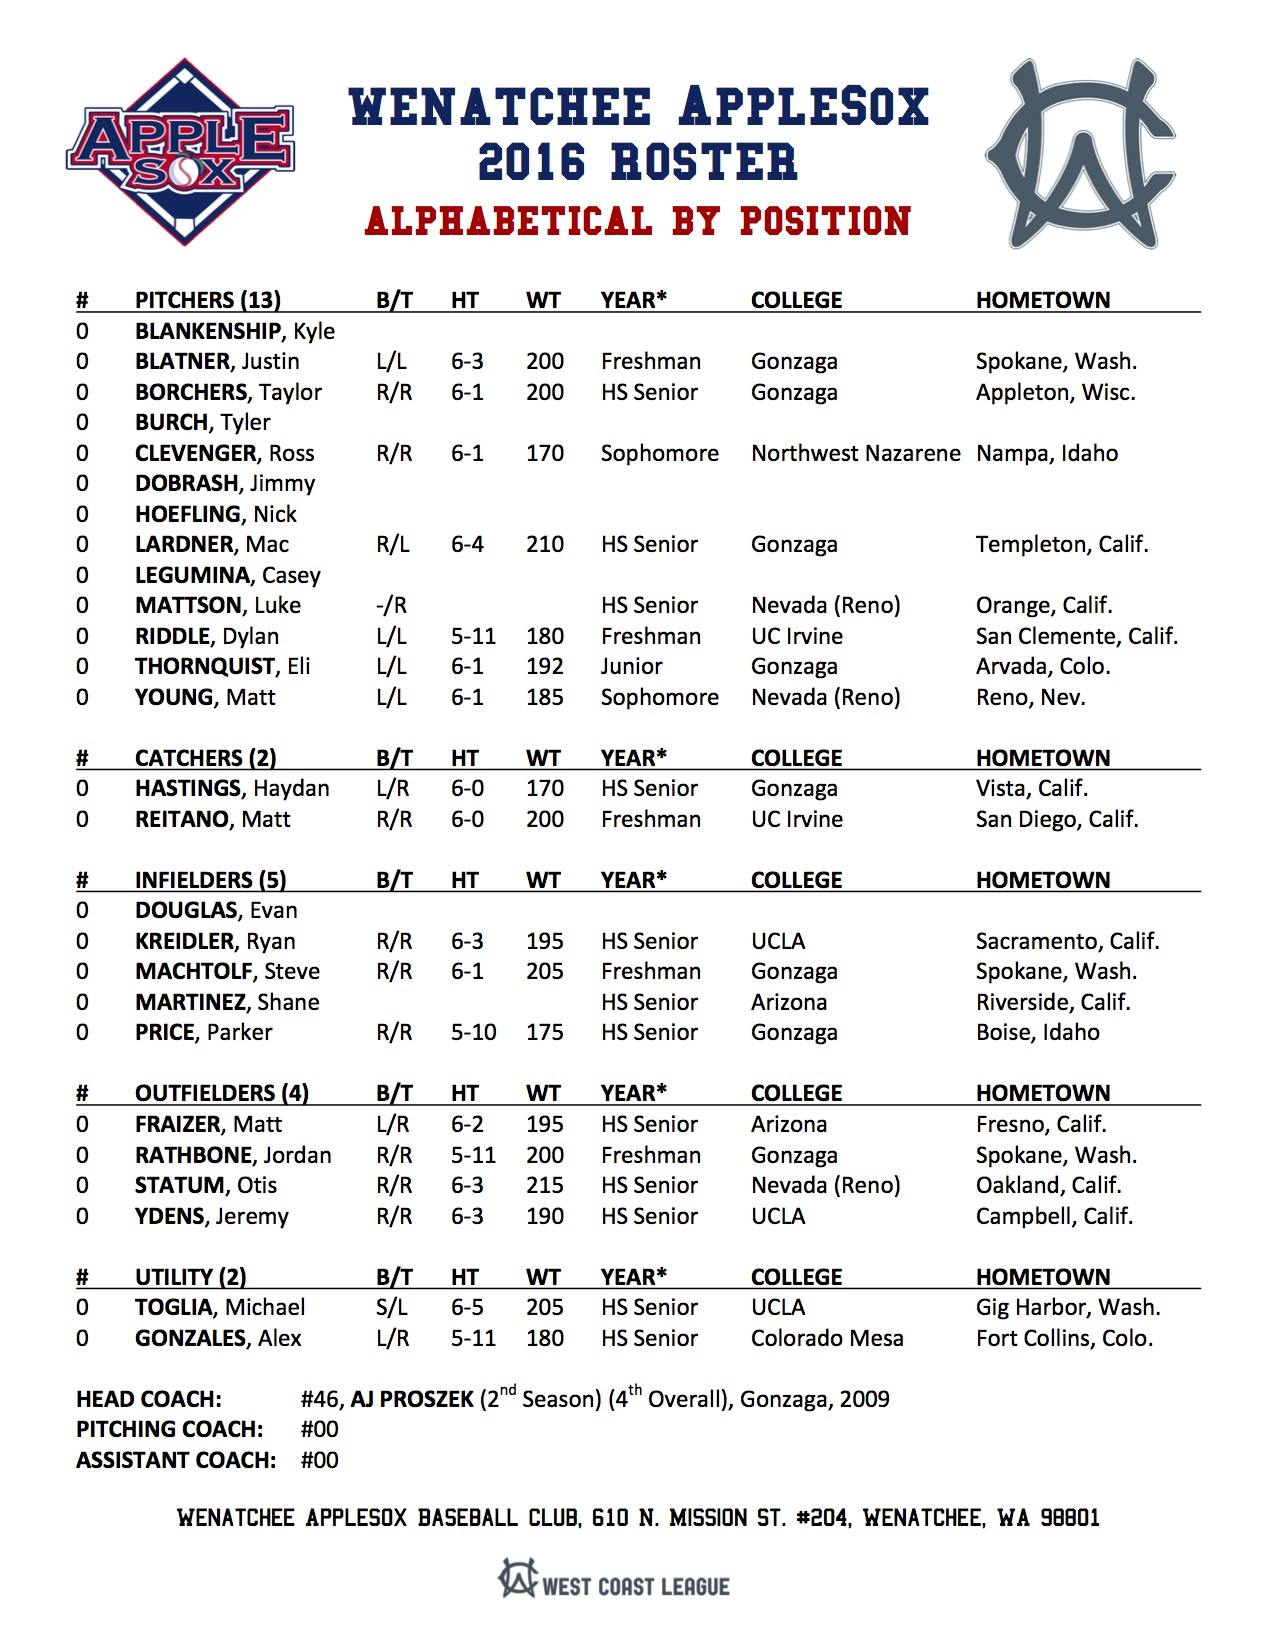 Alex Gonzales, the brother of former Sox pitcher Marco Gonzales, is among the latest to join the 2016 AppleSox. Other signings include the return of last year's shortstop Evan Douglas, right-handed pitcher Ross Clevenger, right-handed pitcher Jimmy Dobrash, and left-handed pitcher Nick Hoefling.